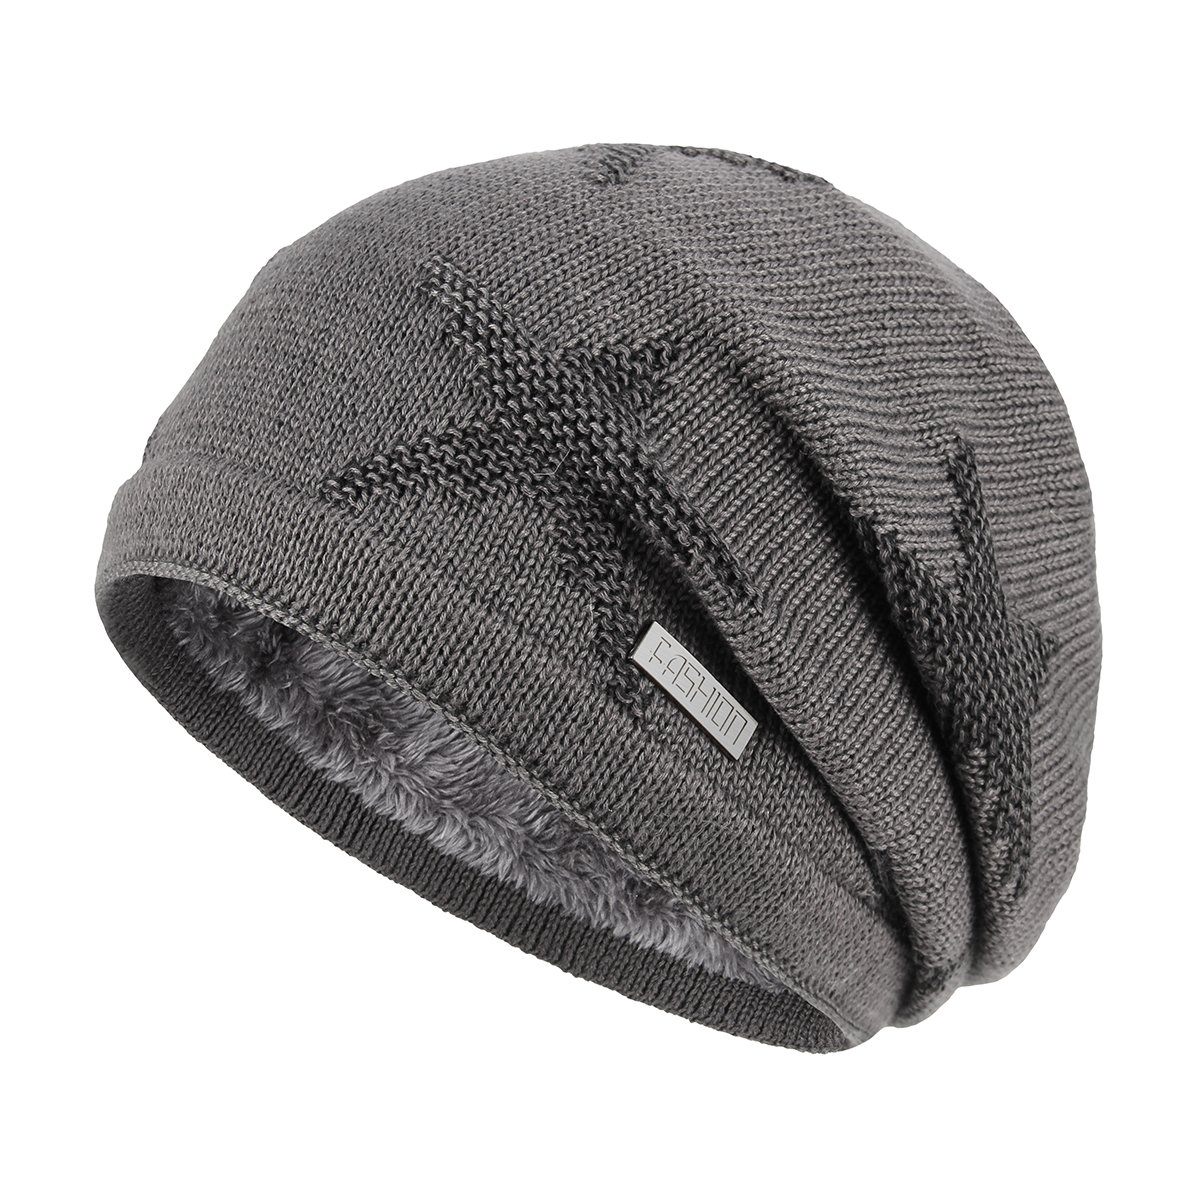 76b04521925 Top2  OMECHY Winter Knit Slouchy Beanie Hat Unisex Daily Warm Ski Skull Cap  4 Colors. Wholesale Price 11.99 100% Soft Acrylic Imported